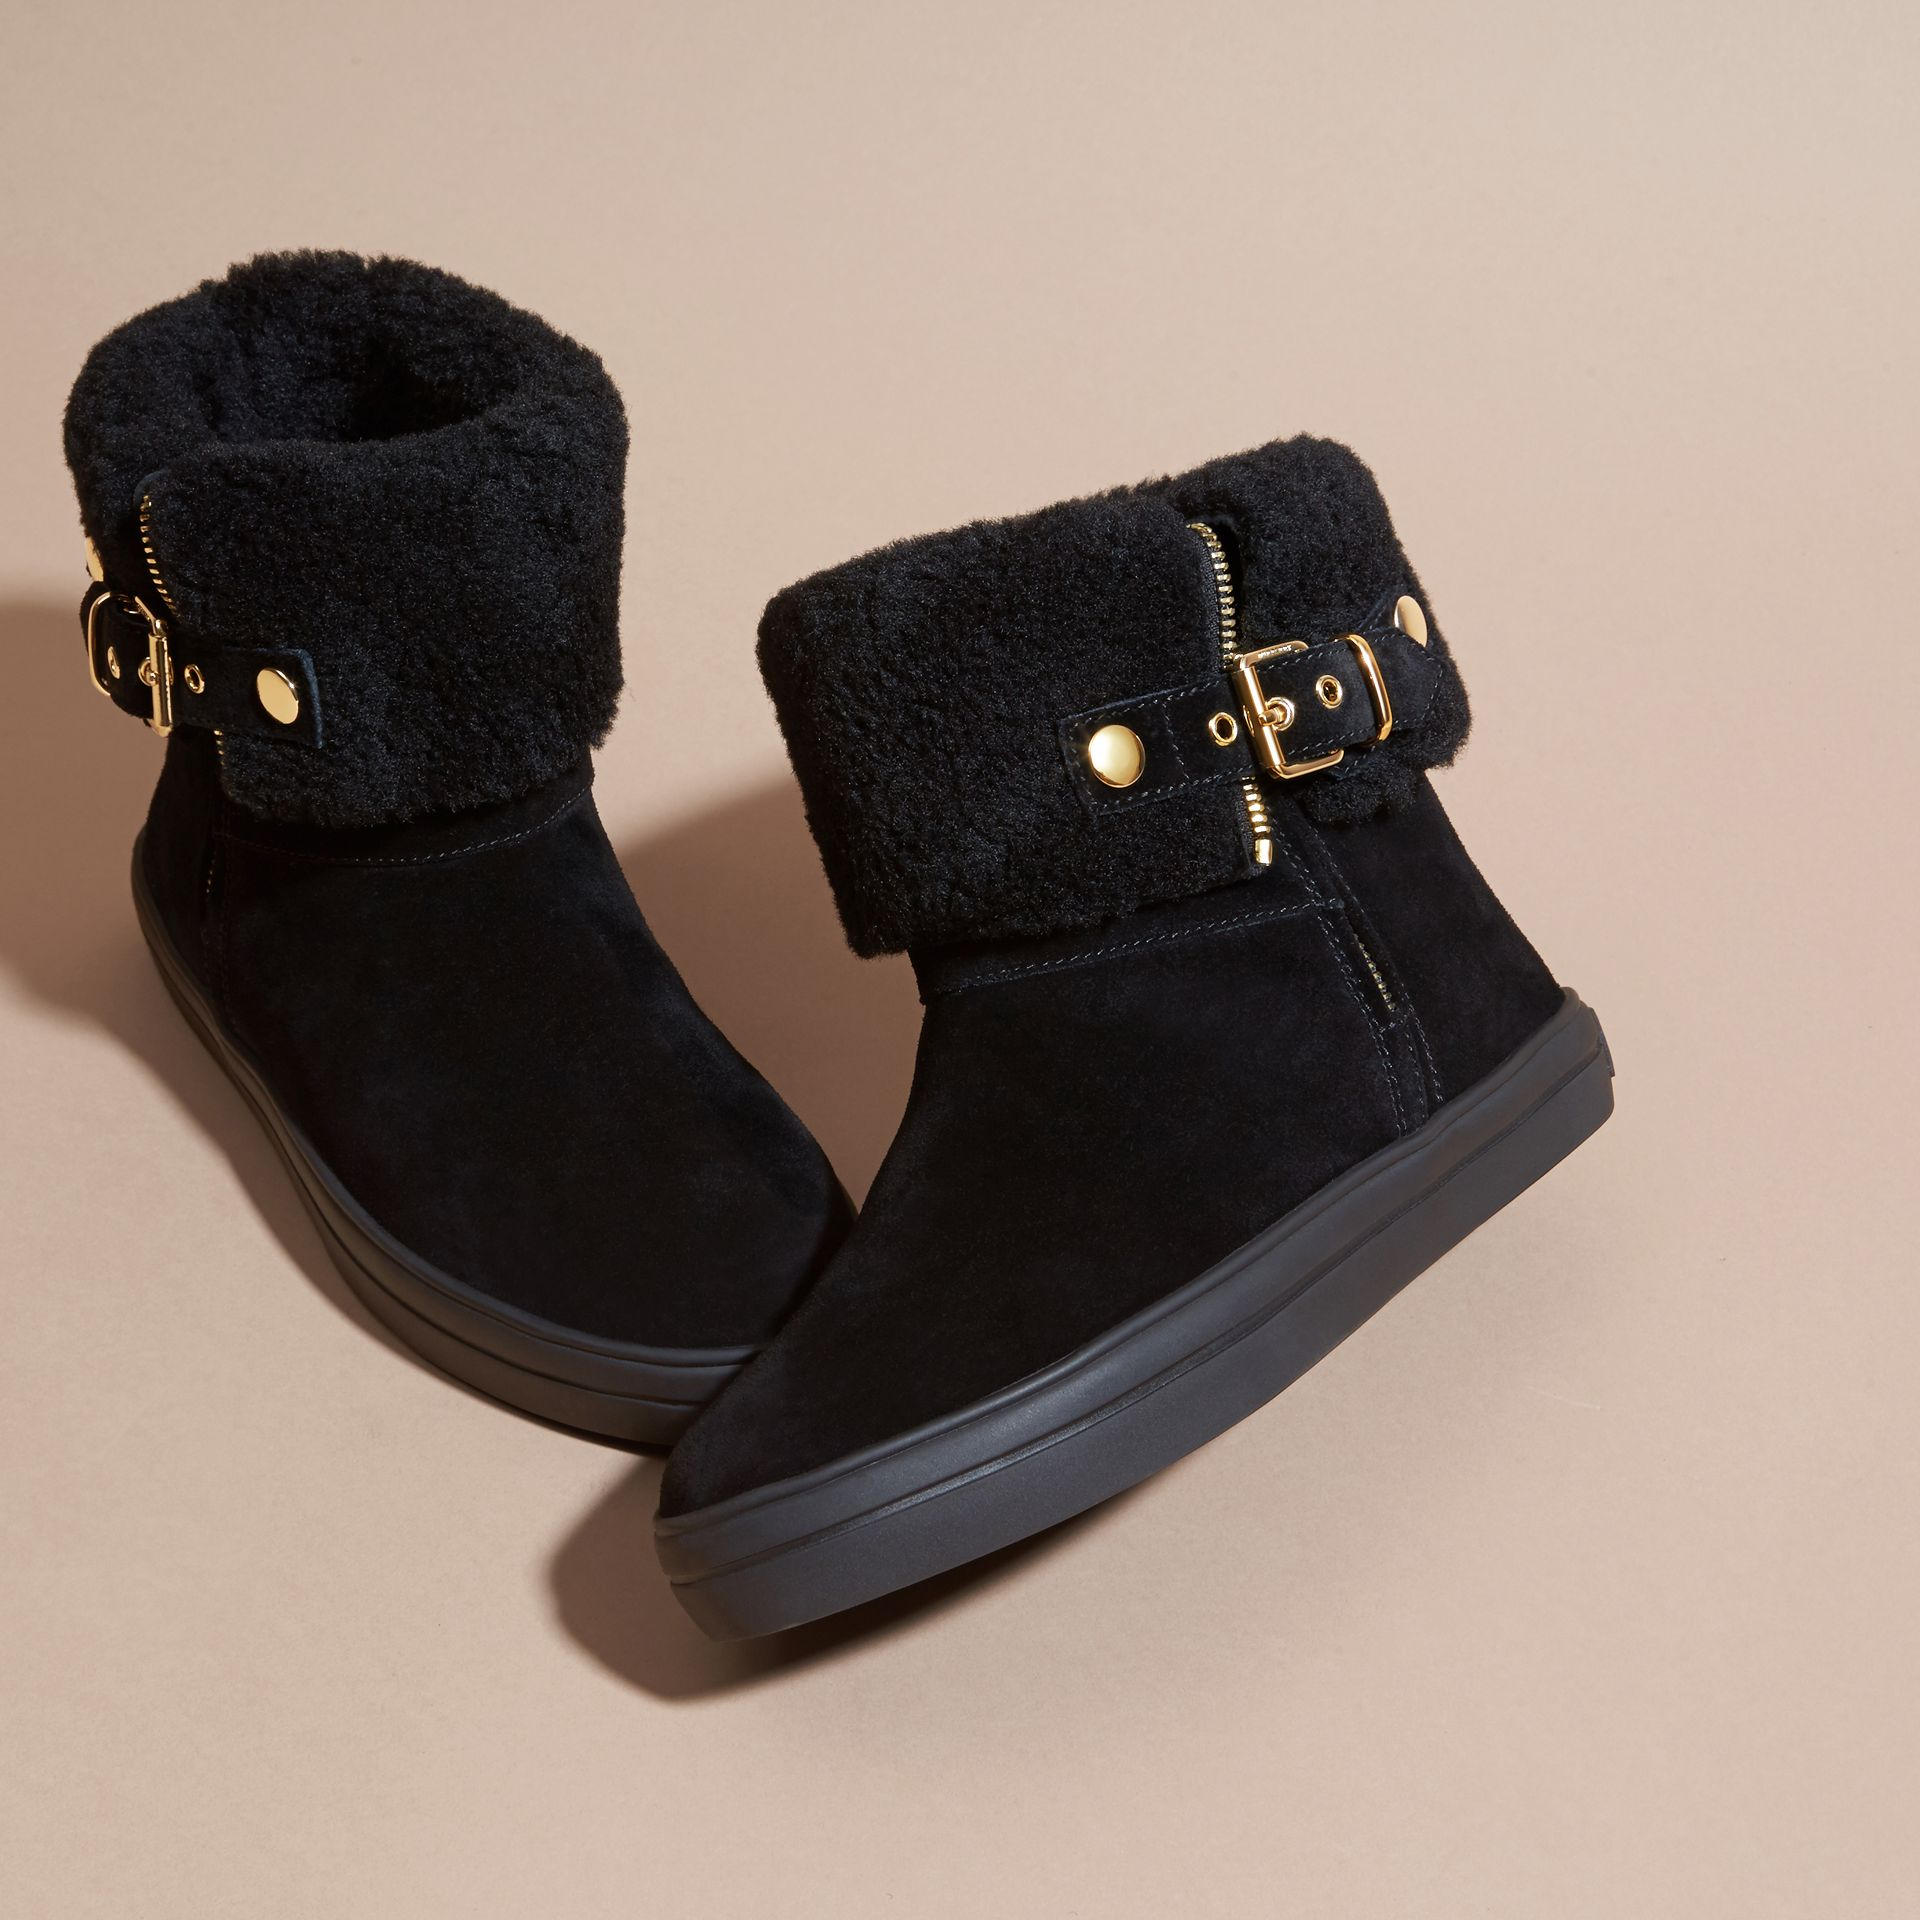 Shearling-lined Suede Ankle Boots in Black - Women | Burberry - gallery image 3